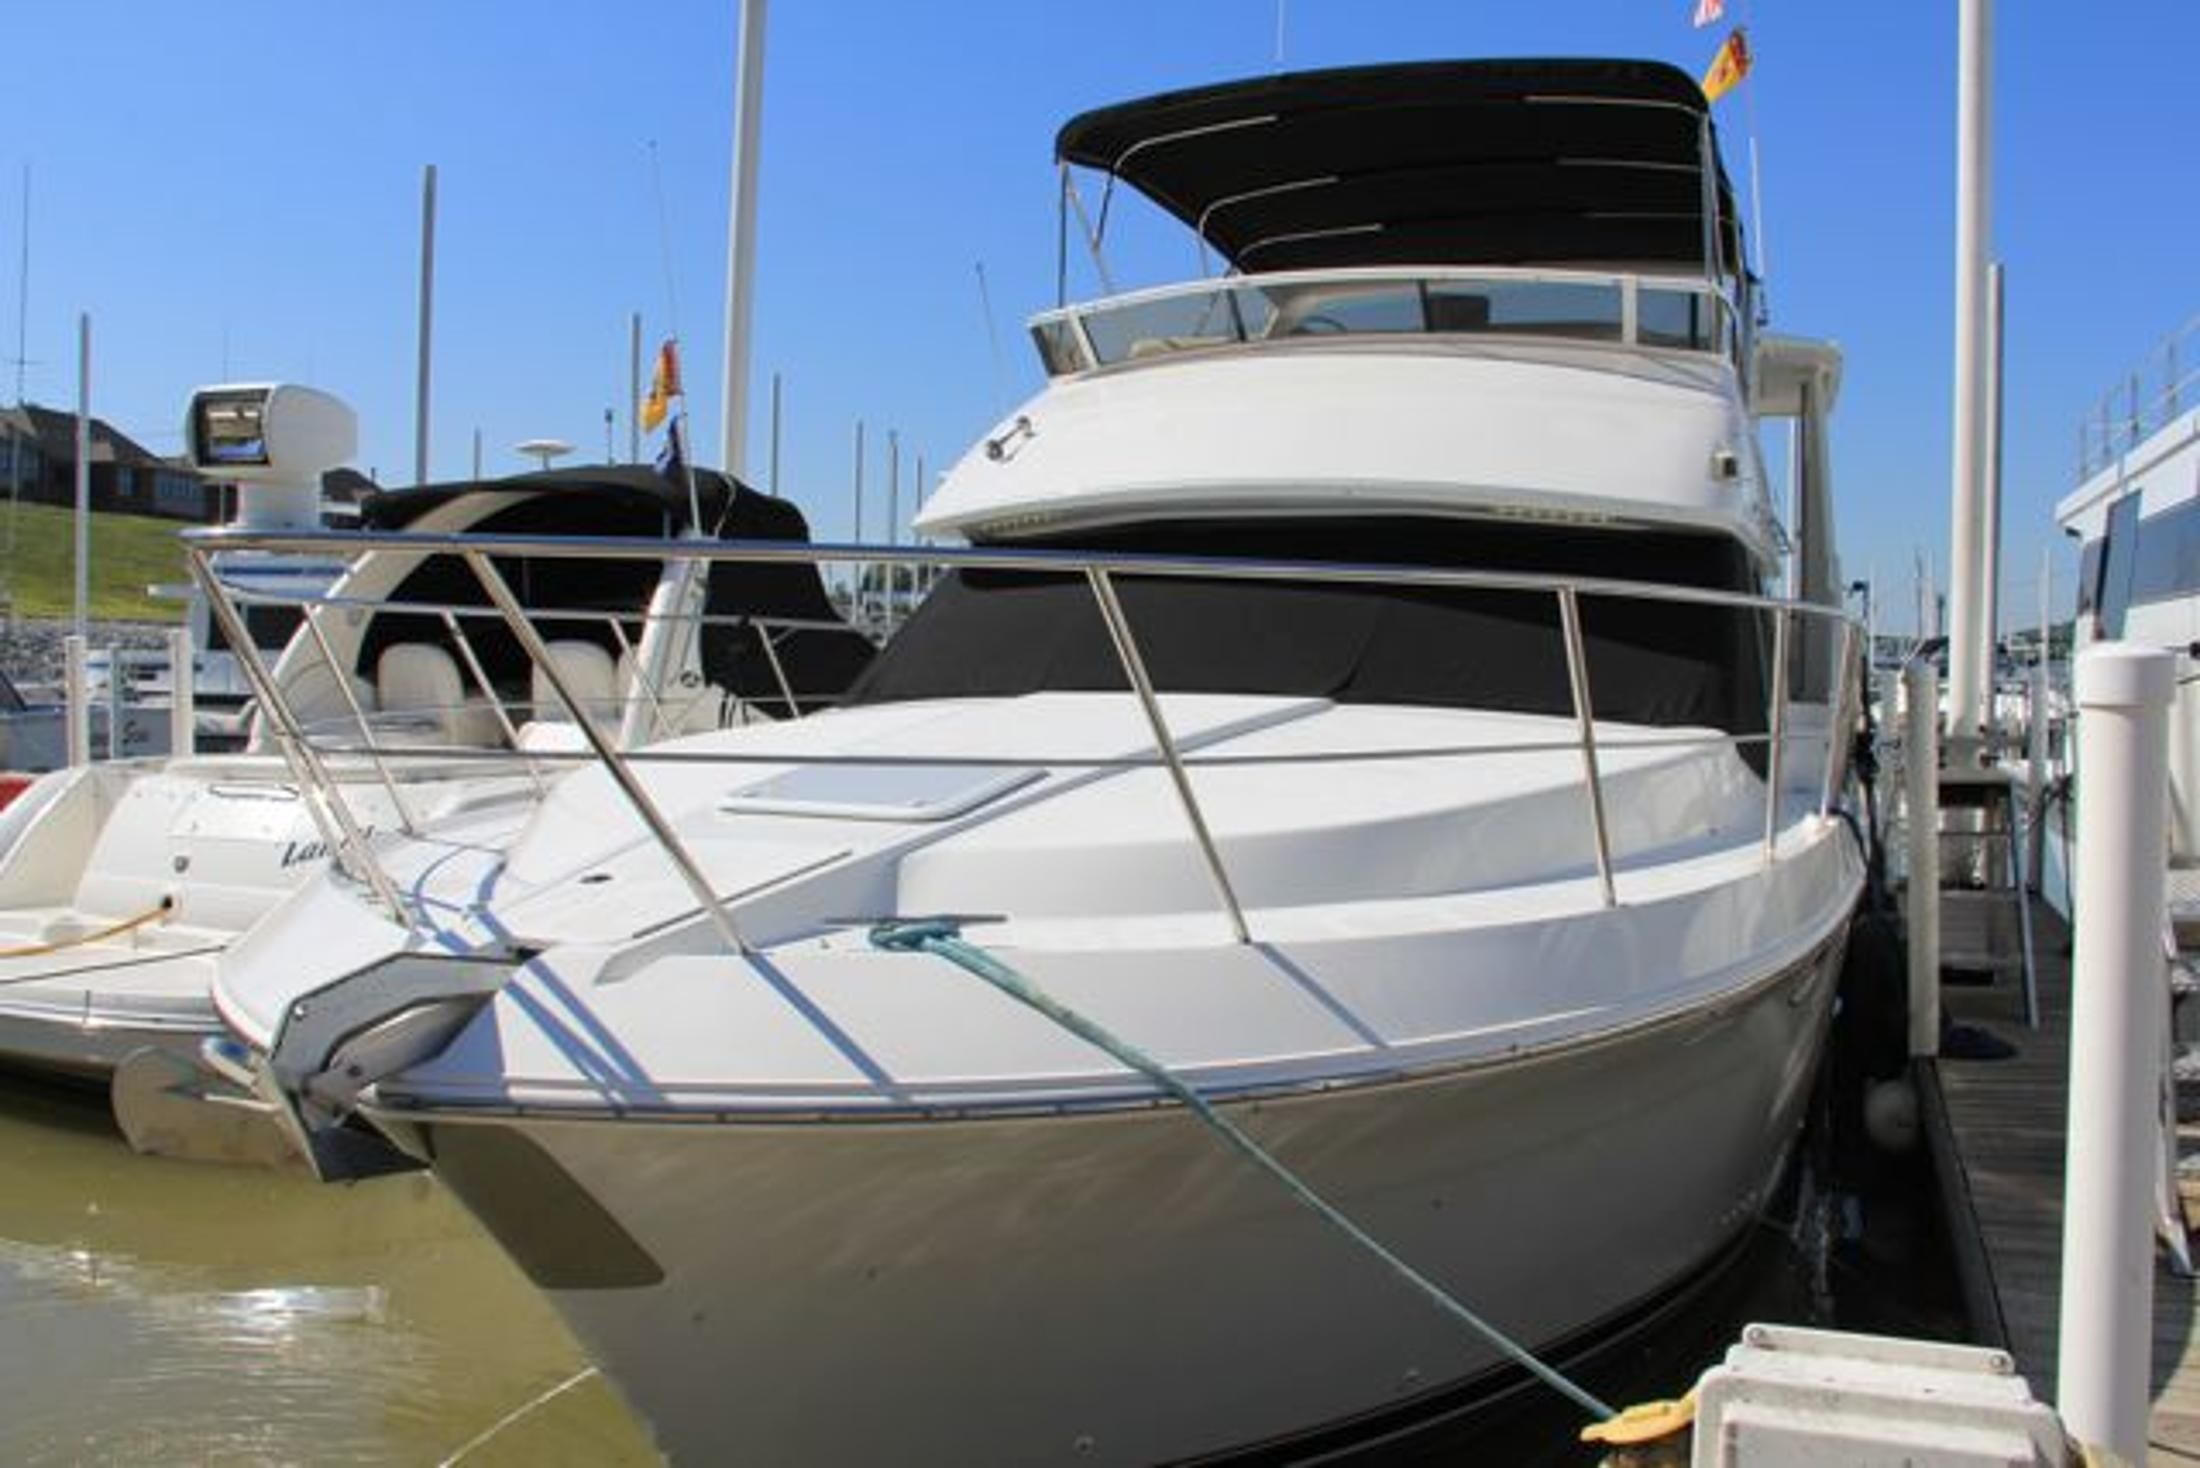 1999 carver 406 aft cabin motor yacht power new and used boats for Carver aft cabin motor yacht